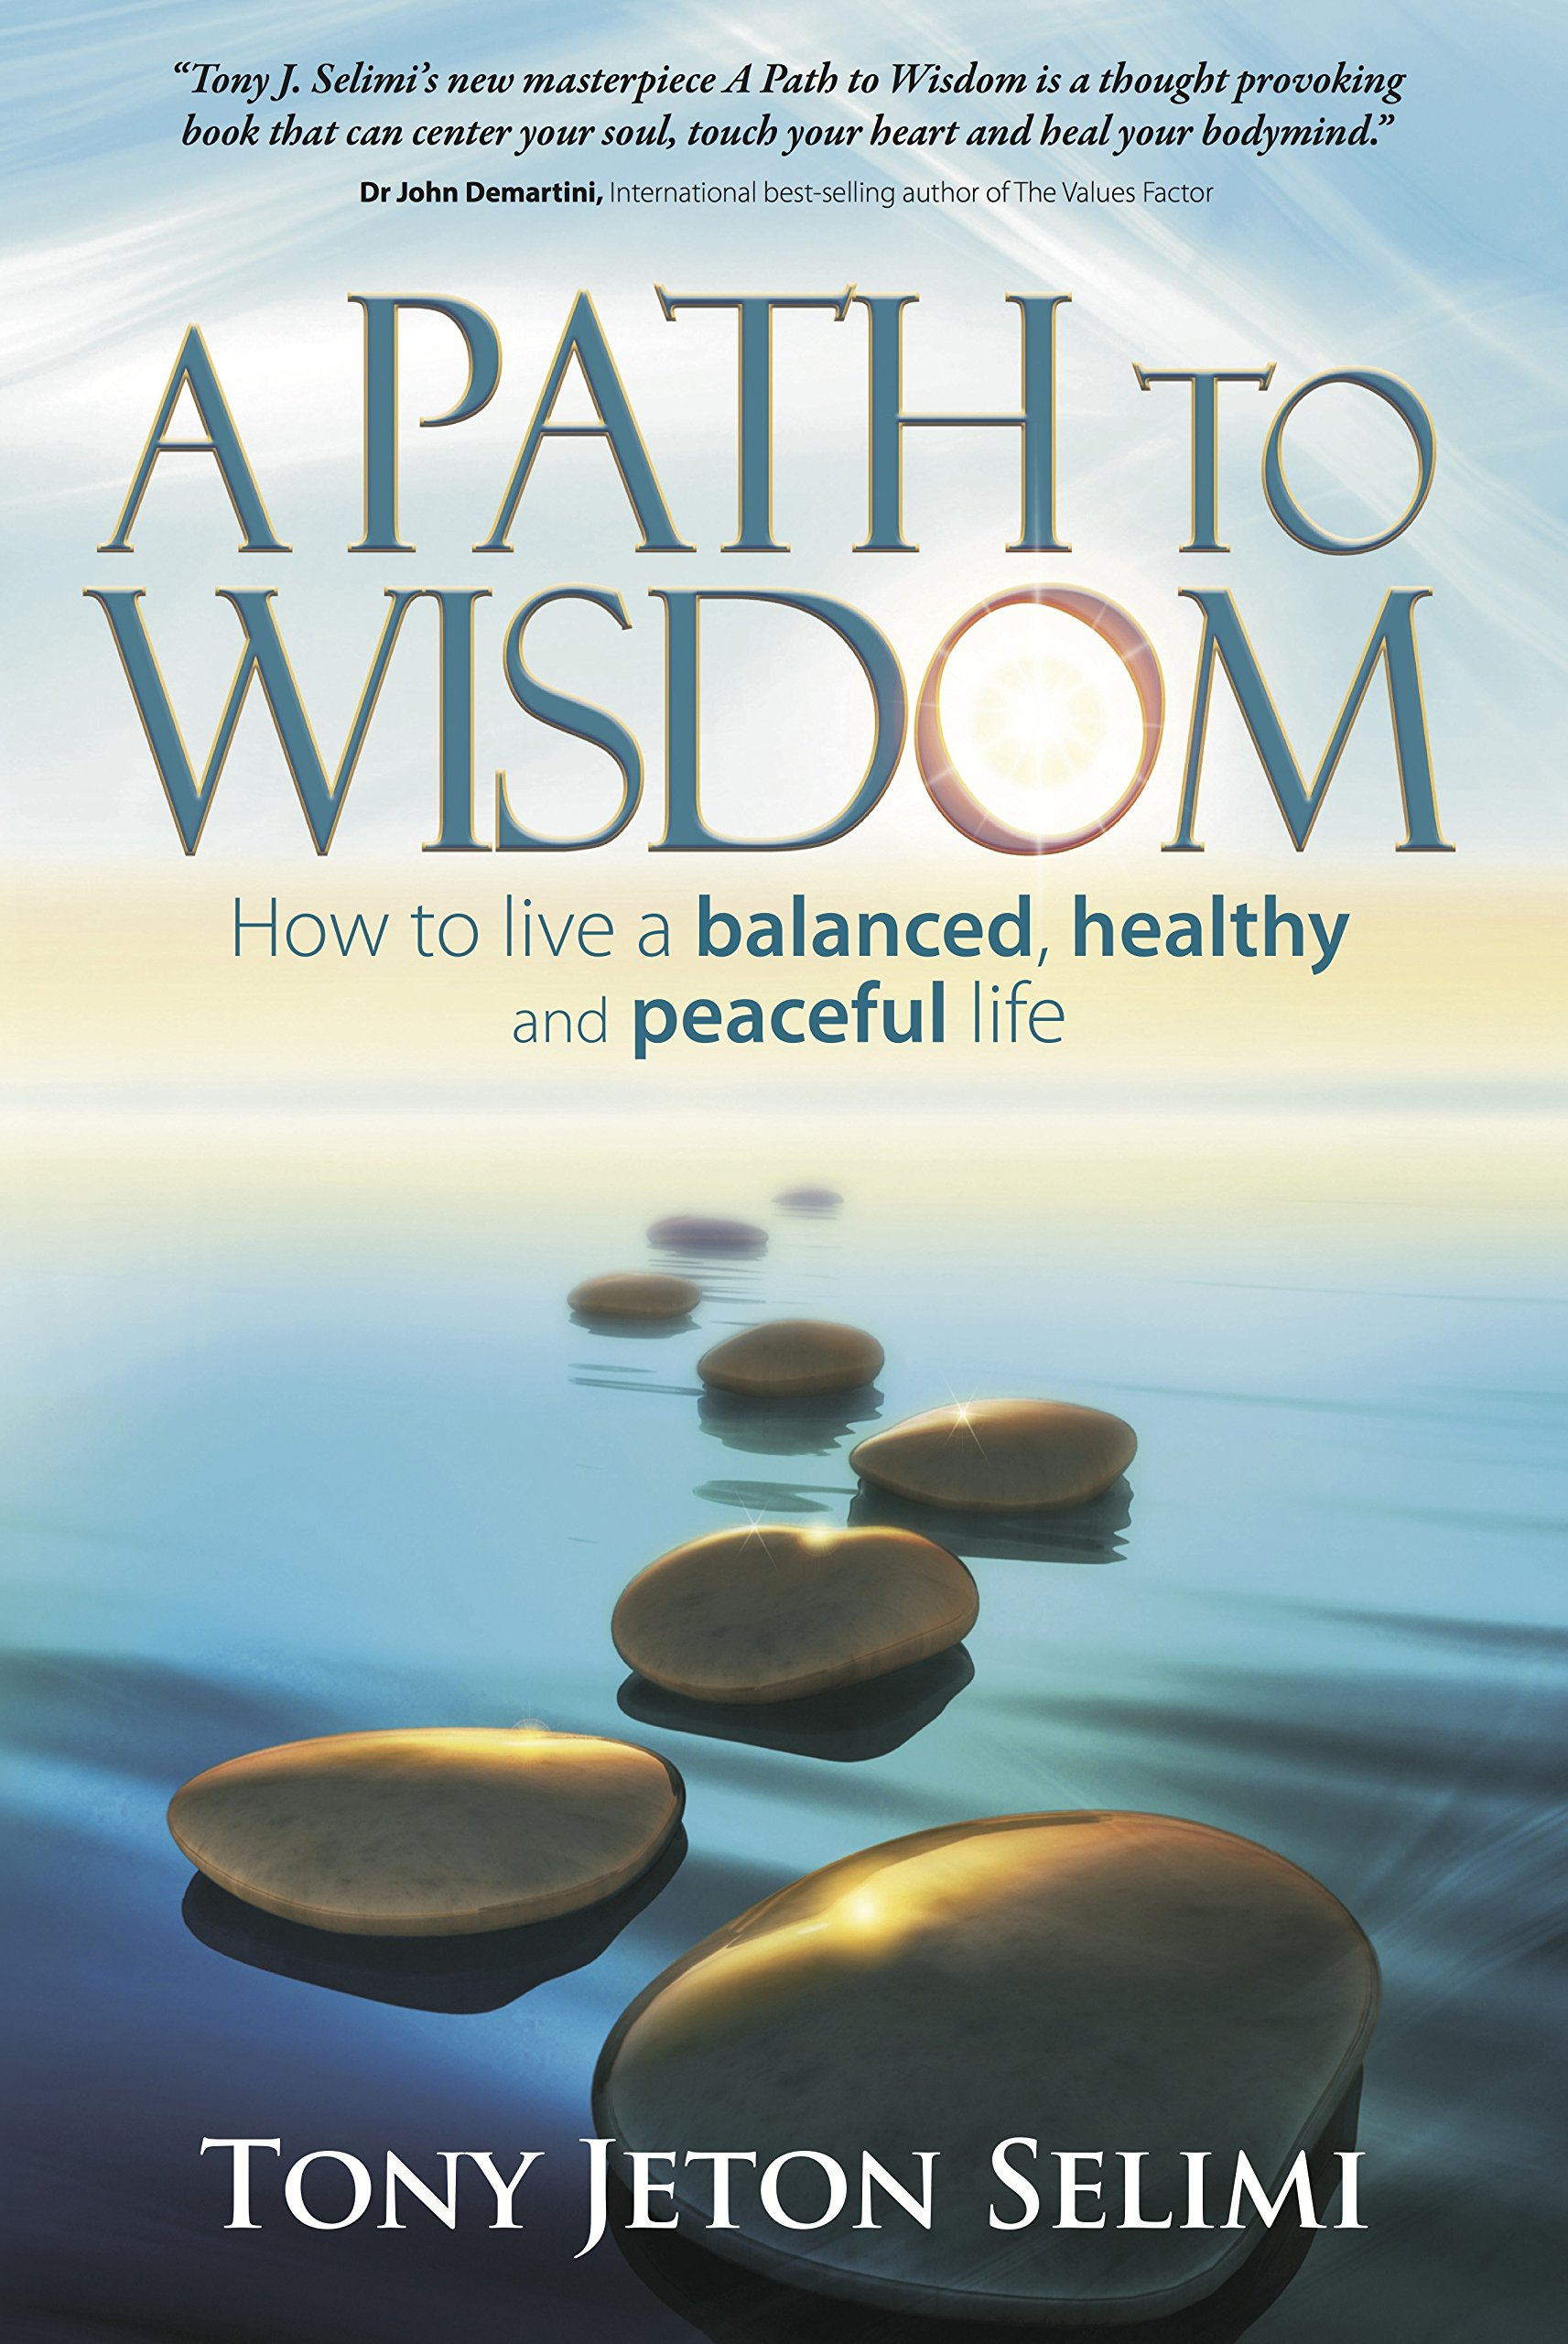 a path to wisdom written by tony j selimi designing your life book Follow the Author. Tony Jeton Selimi